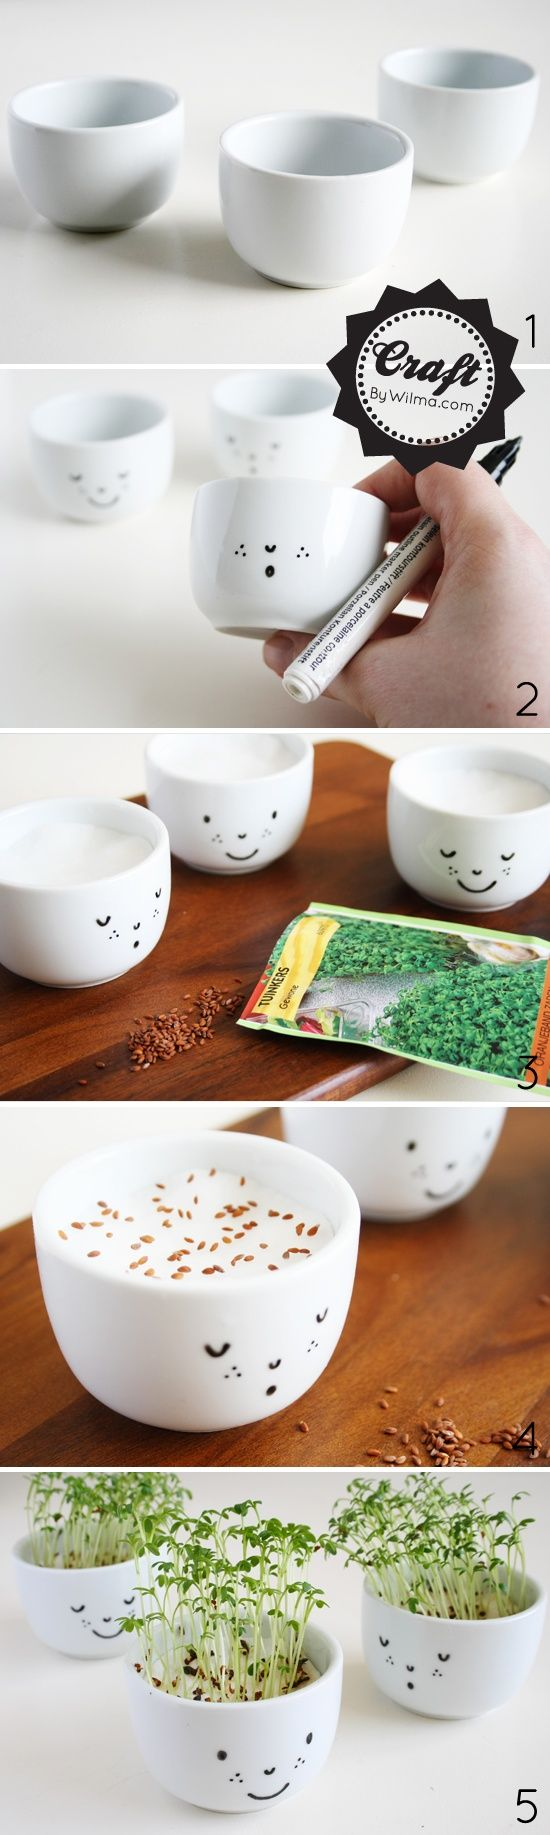 #DIY cute cress cups with a face diy ;-)